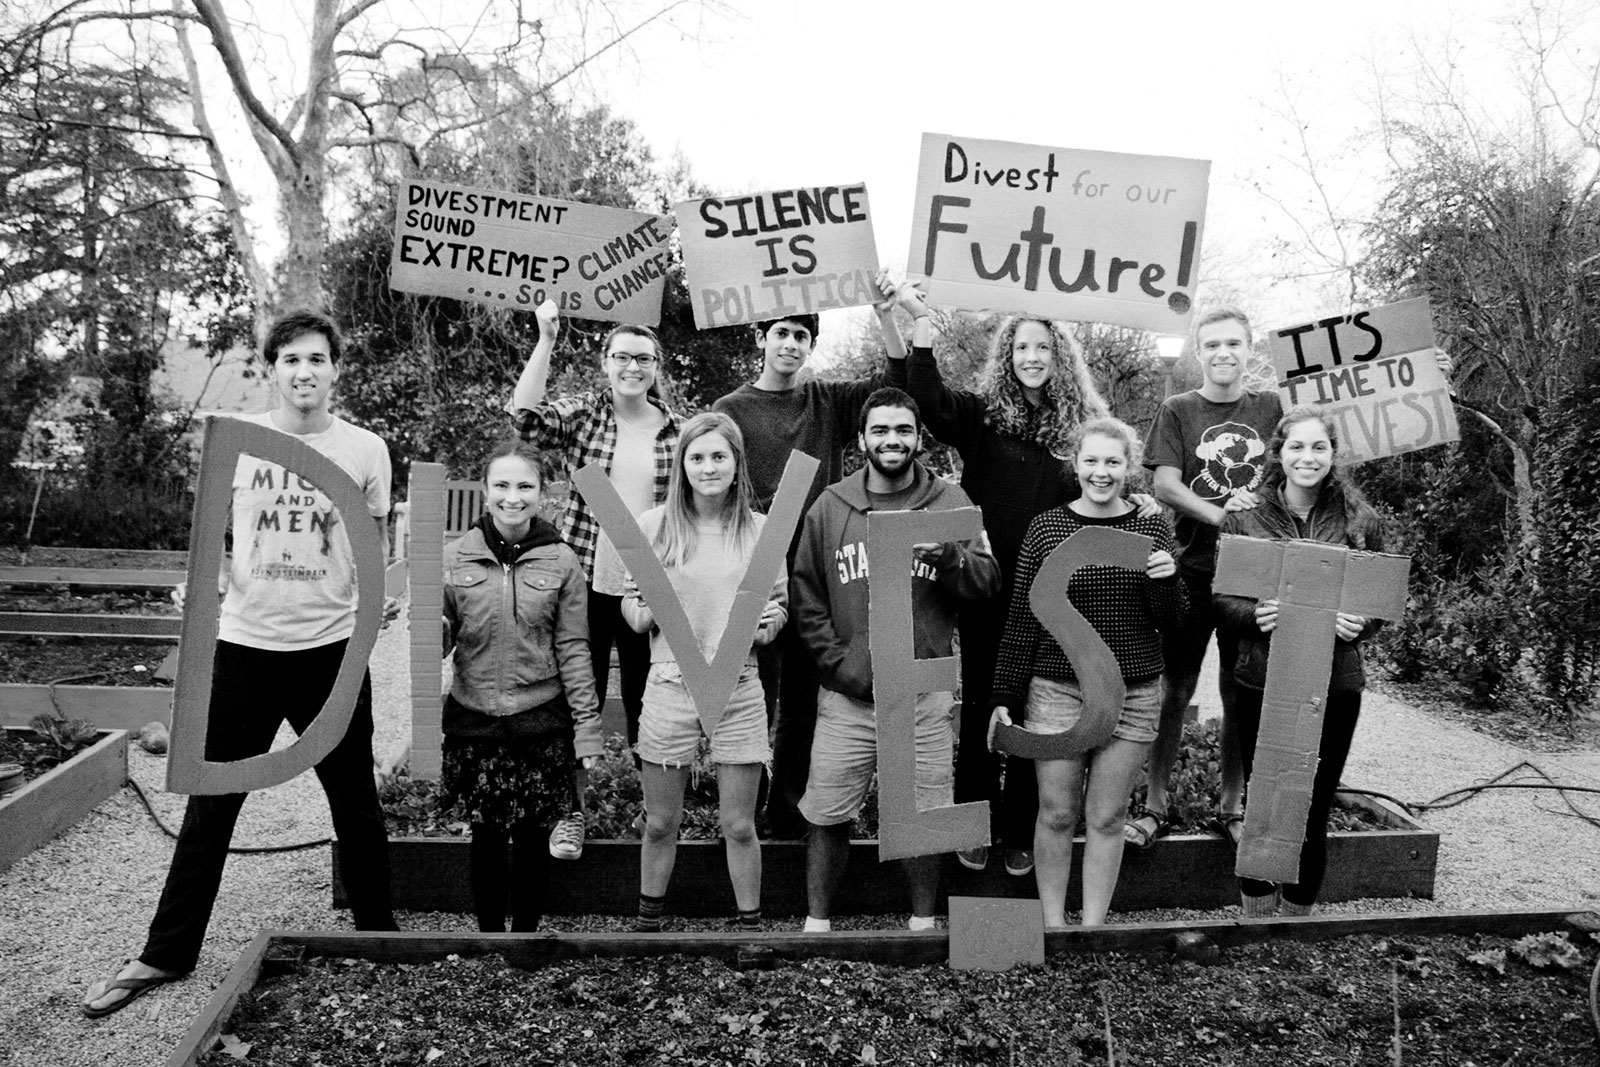 Fossil Free activists protest at Stanford University.